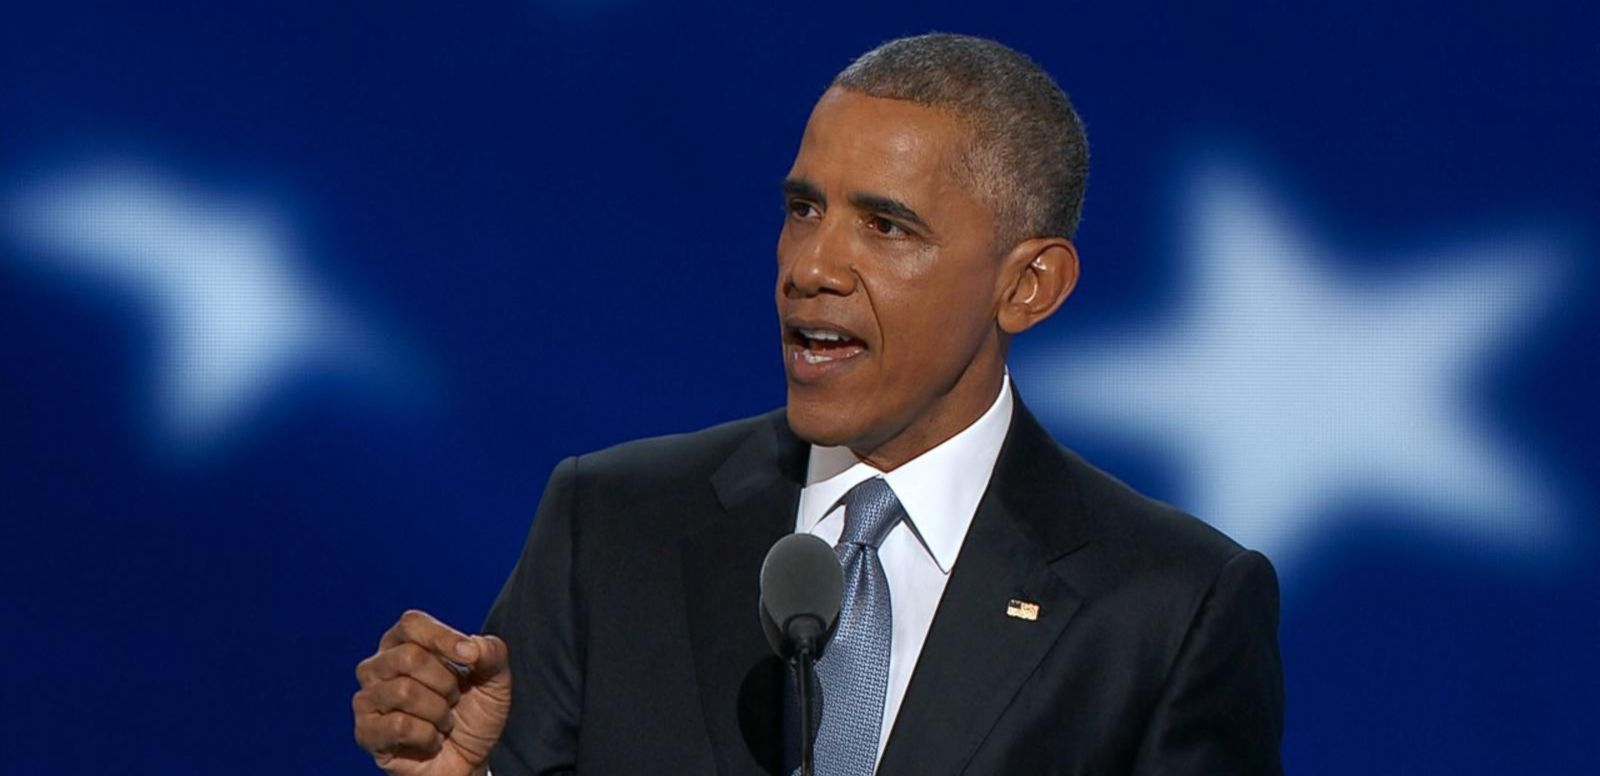 President Obama delivered a resounding defense of the state of the country at the Democratic Convention Wednesday night.